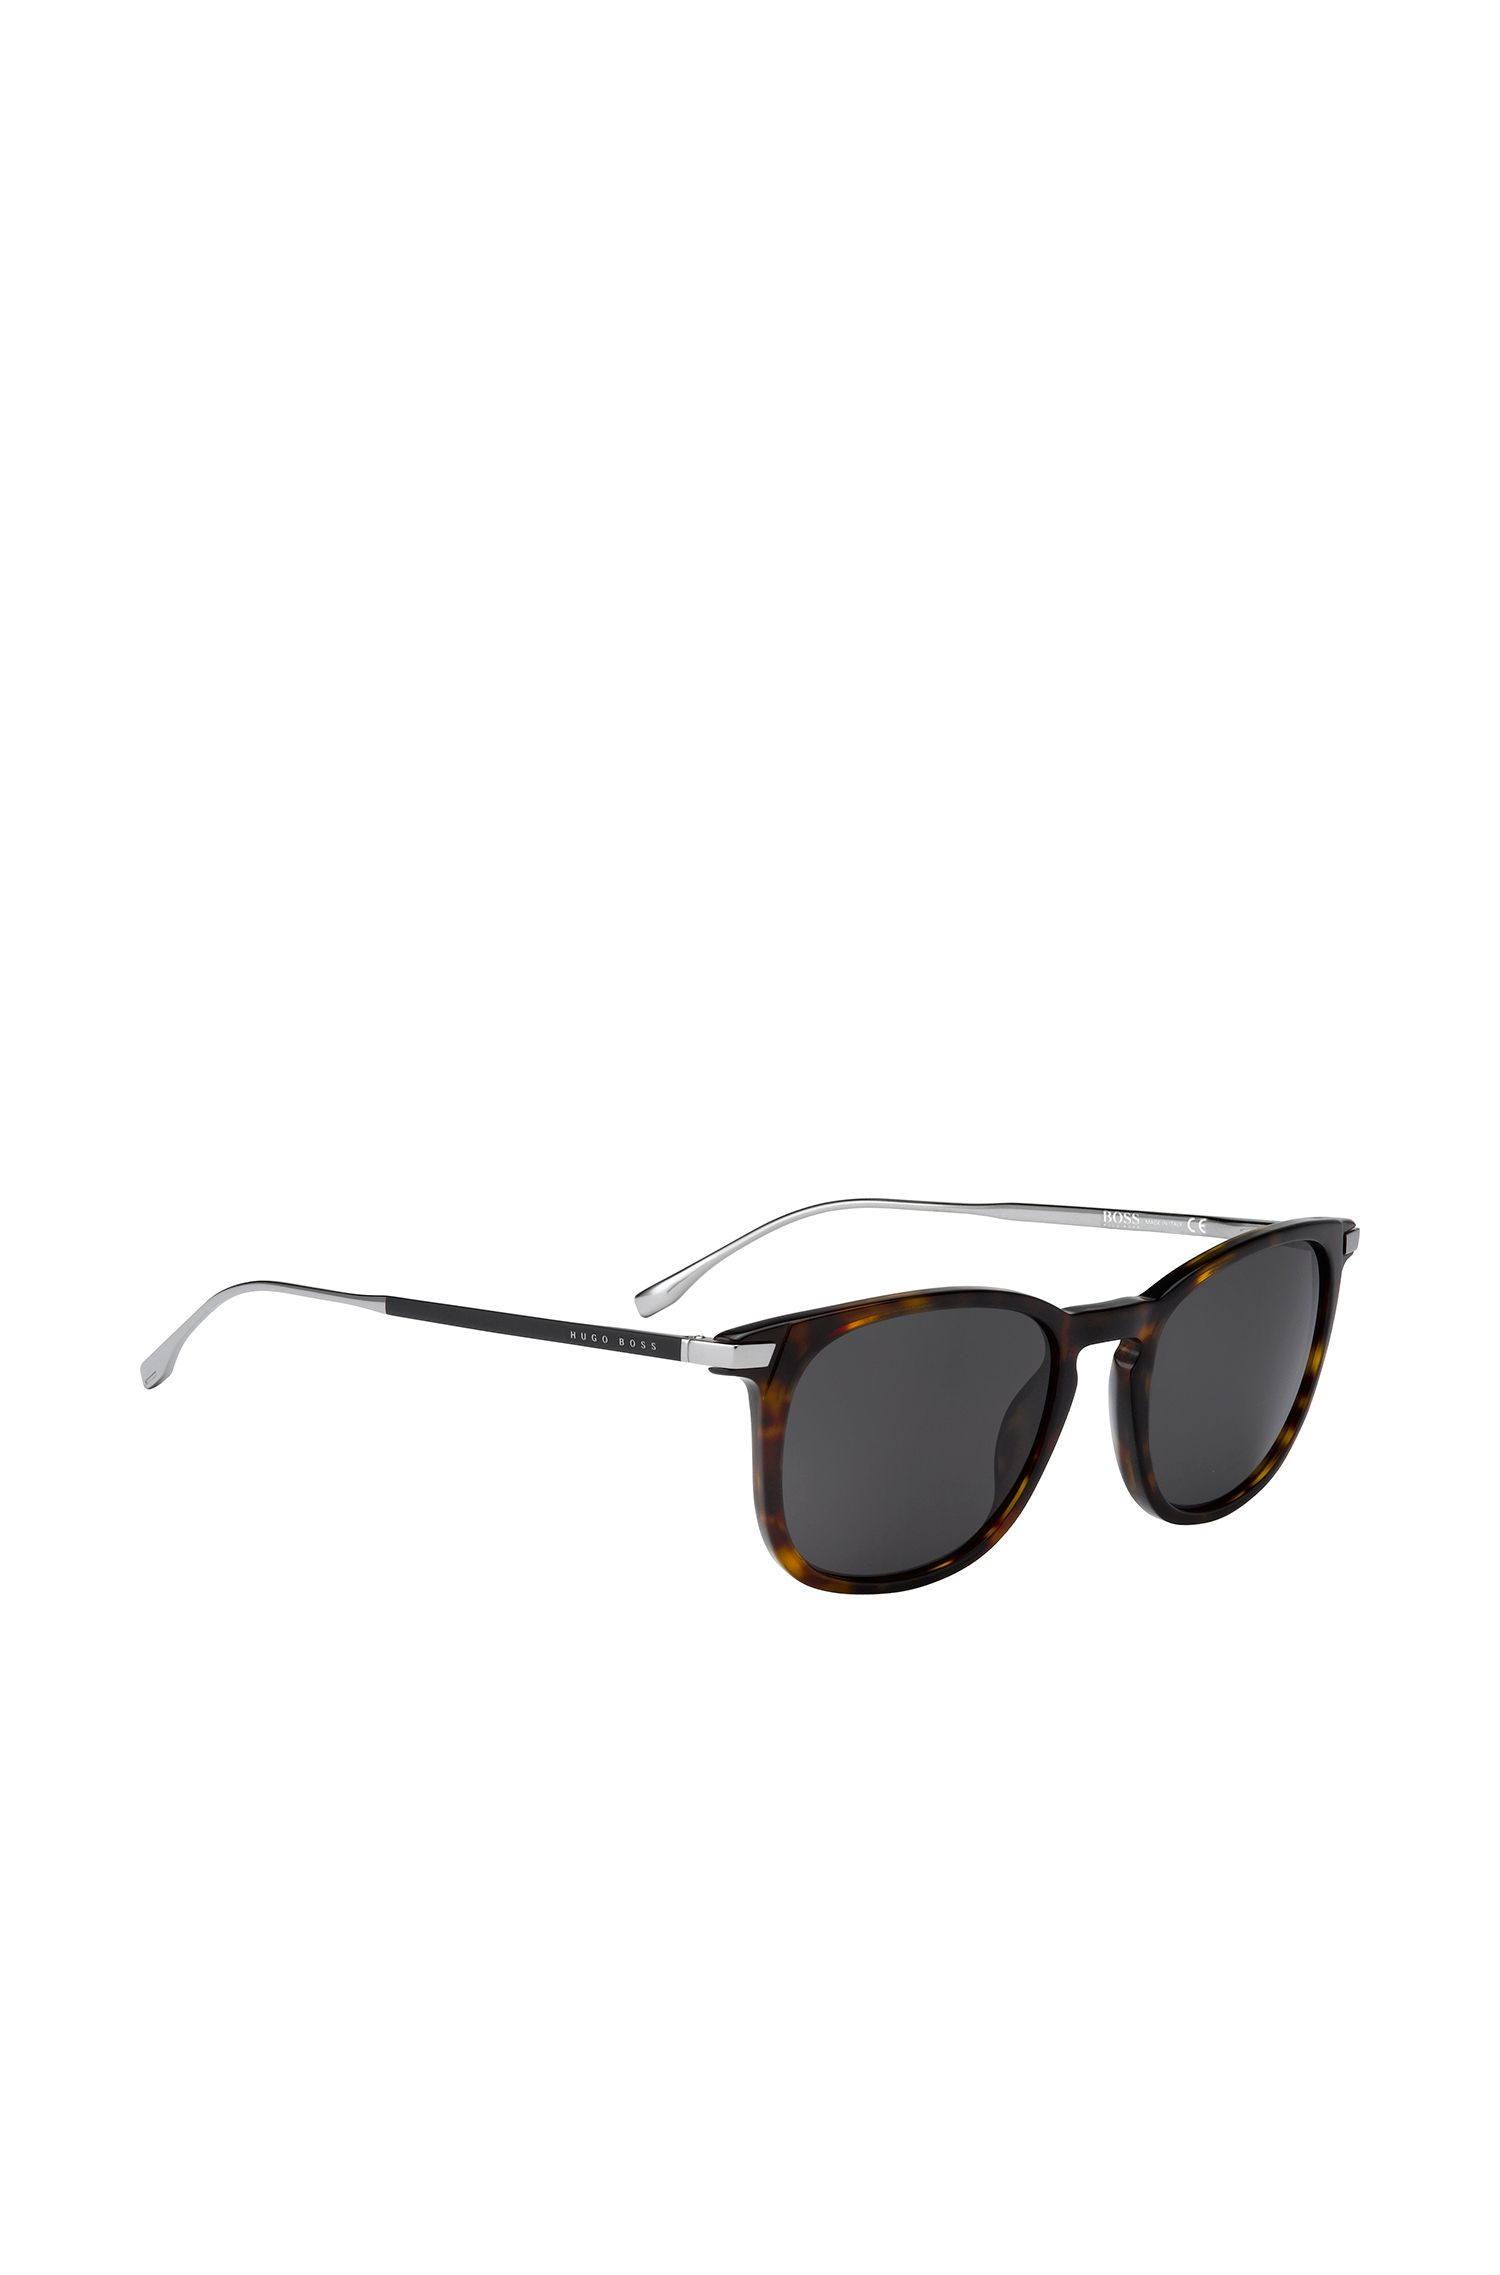 Gray Lens Acetate Sunglasses | BOSS 0783S